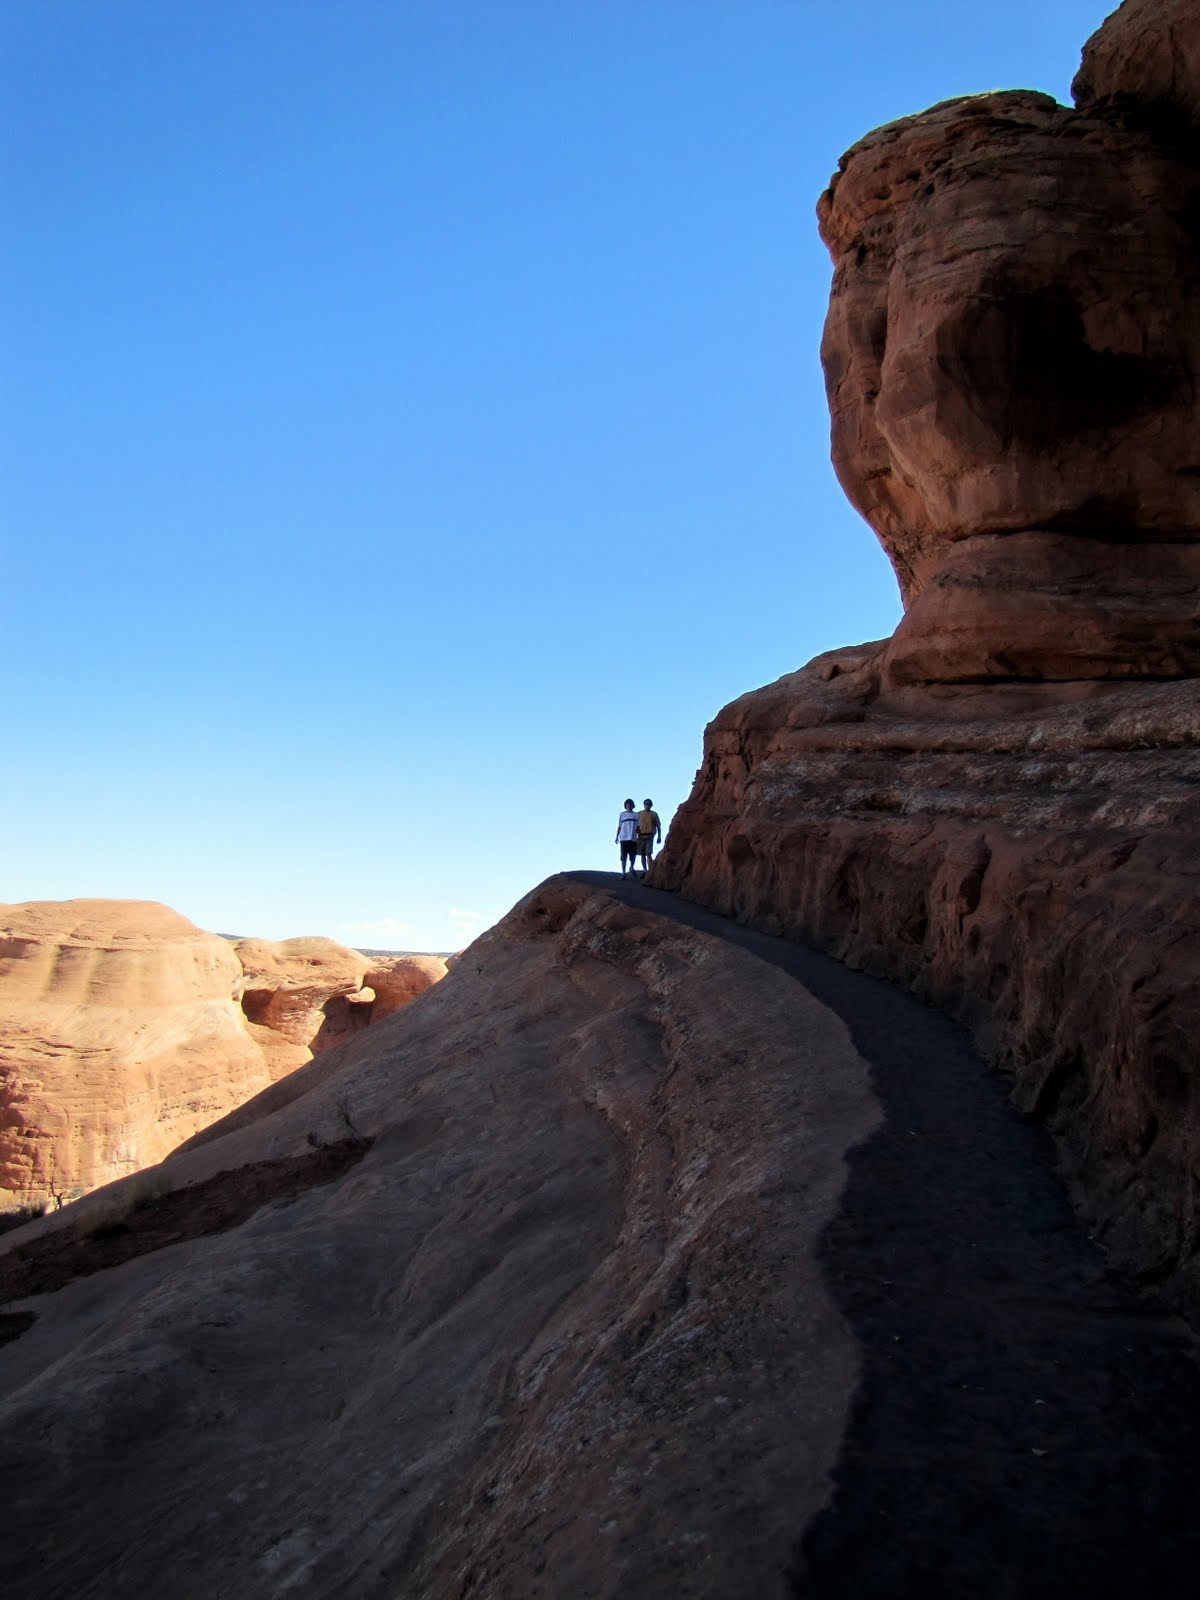 Climbing up to the Delicate Arch, the last curve